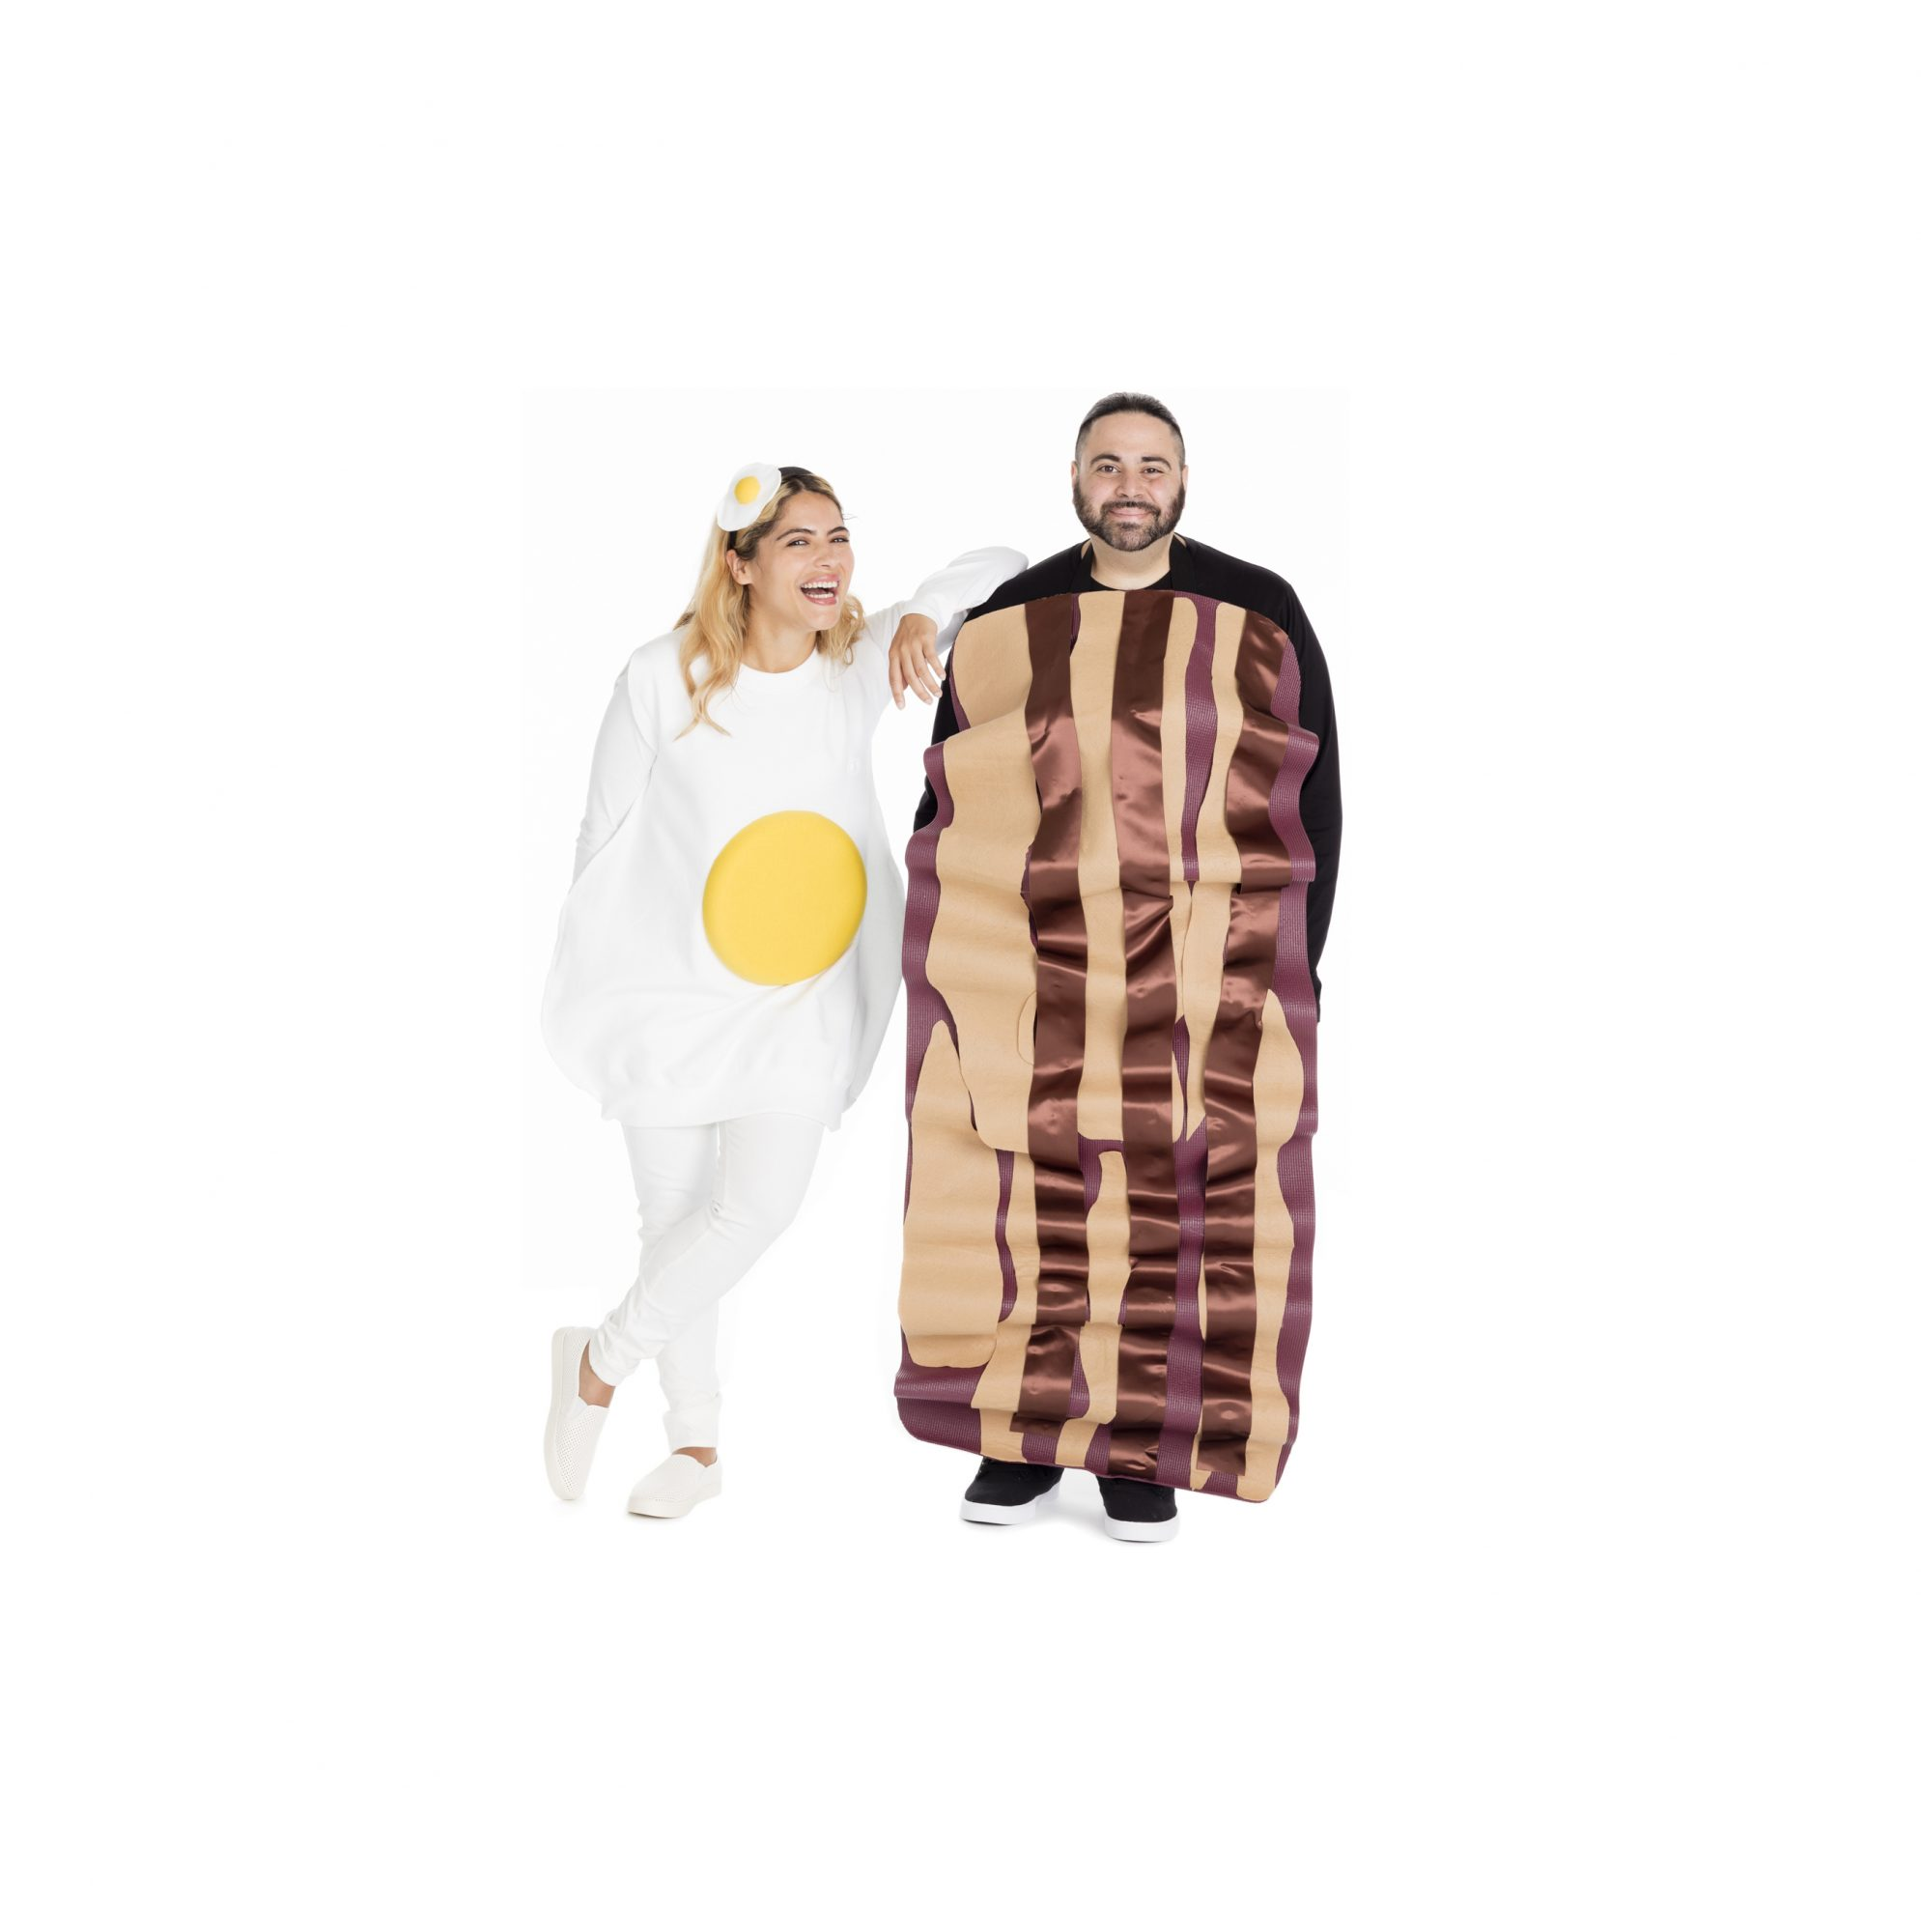 Group Halloween costumes: Bacon and Eggs